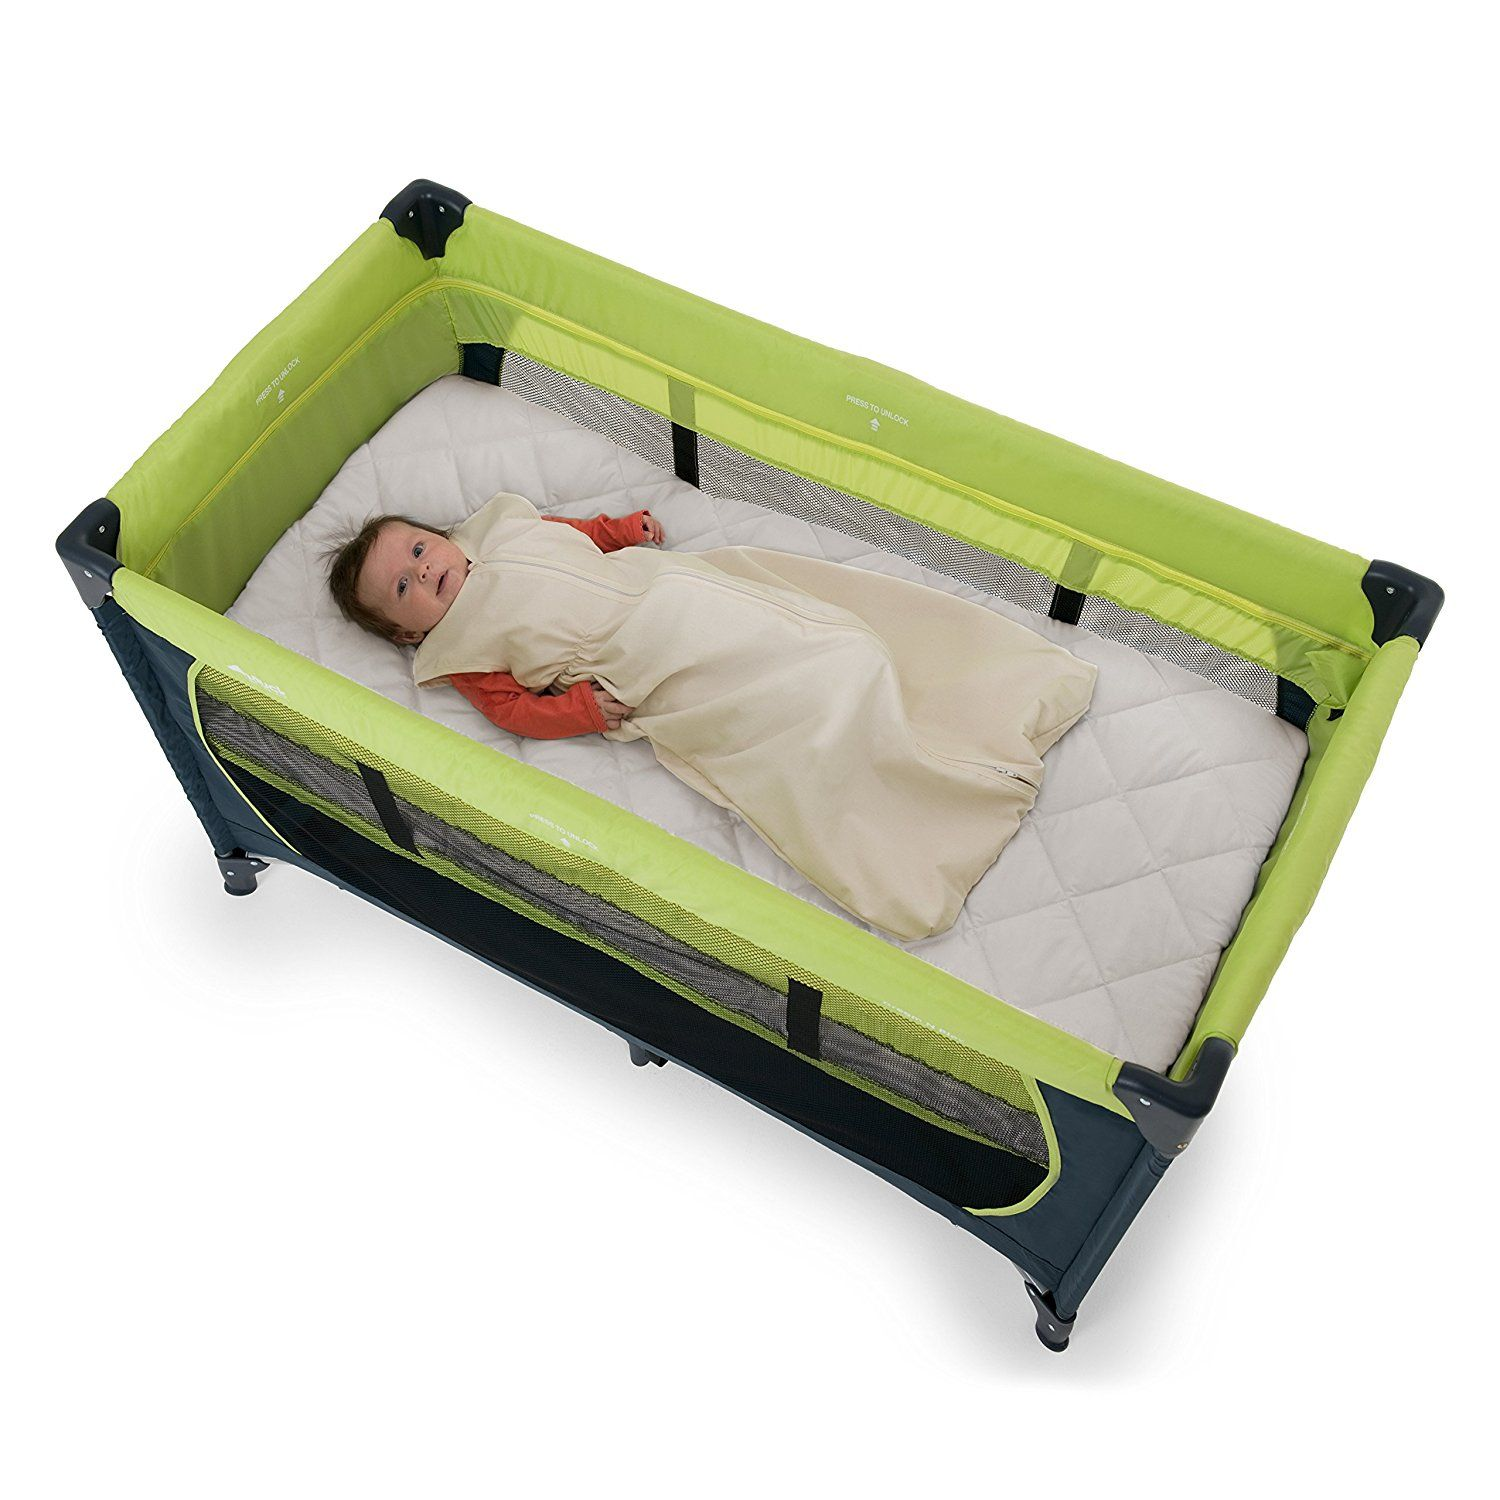 finest selection 3b762 c1f11 How to choose travel cot mattress hauck bed me travel cot ...